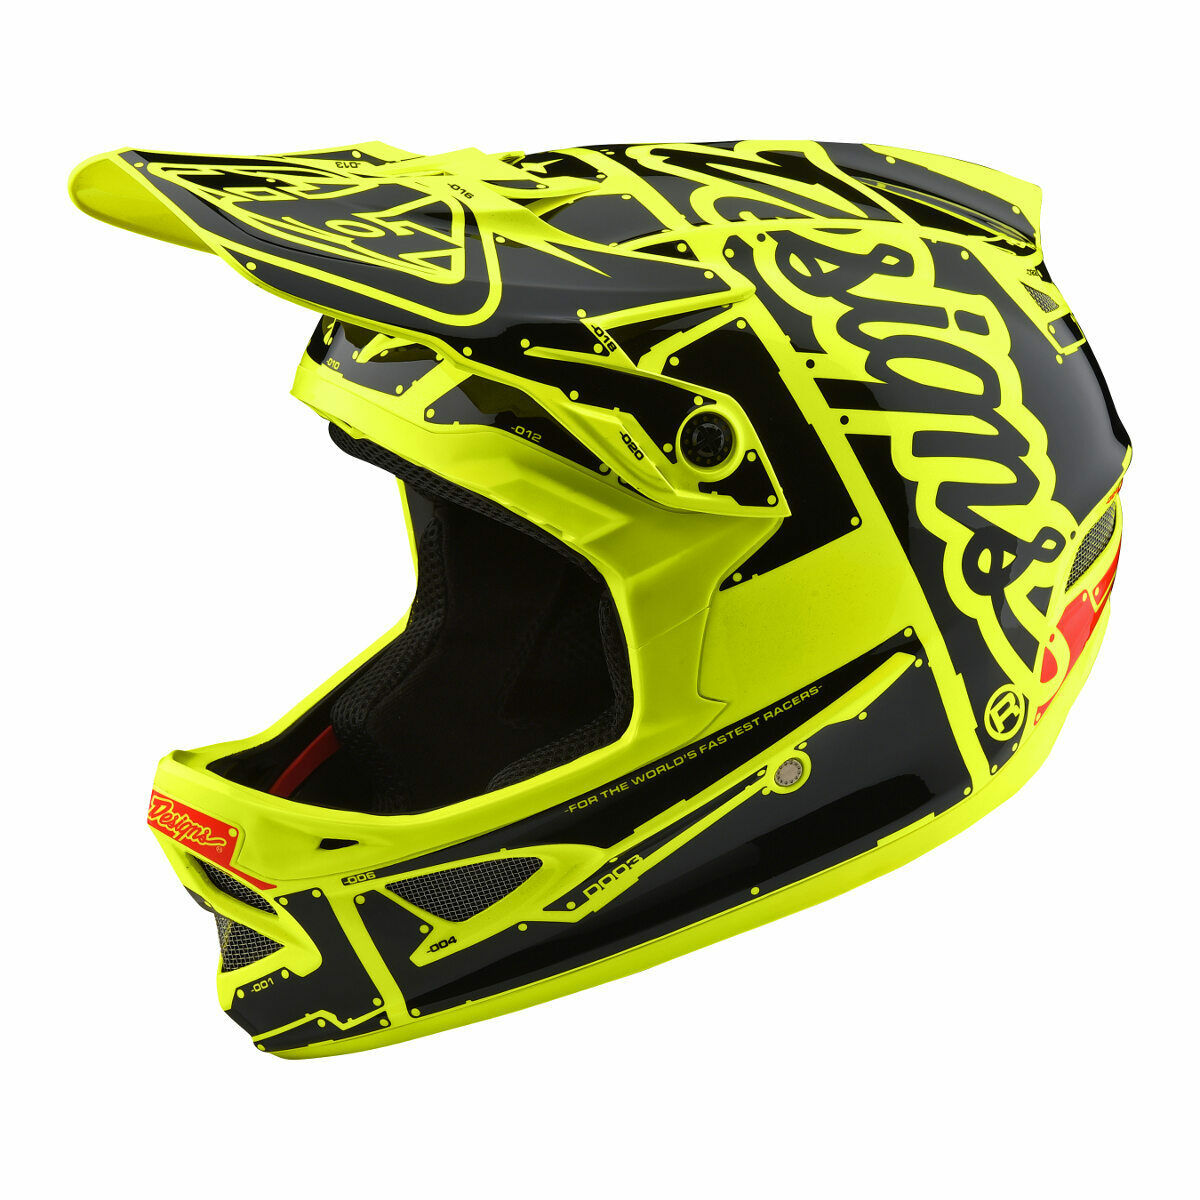 Troy Lee Designs downhill-MTB-casco d3 fiberlite Factory flo amarillo